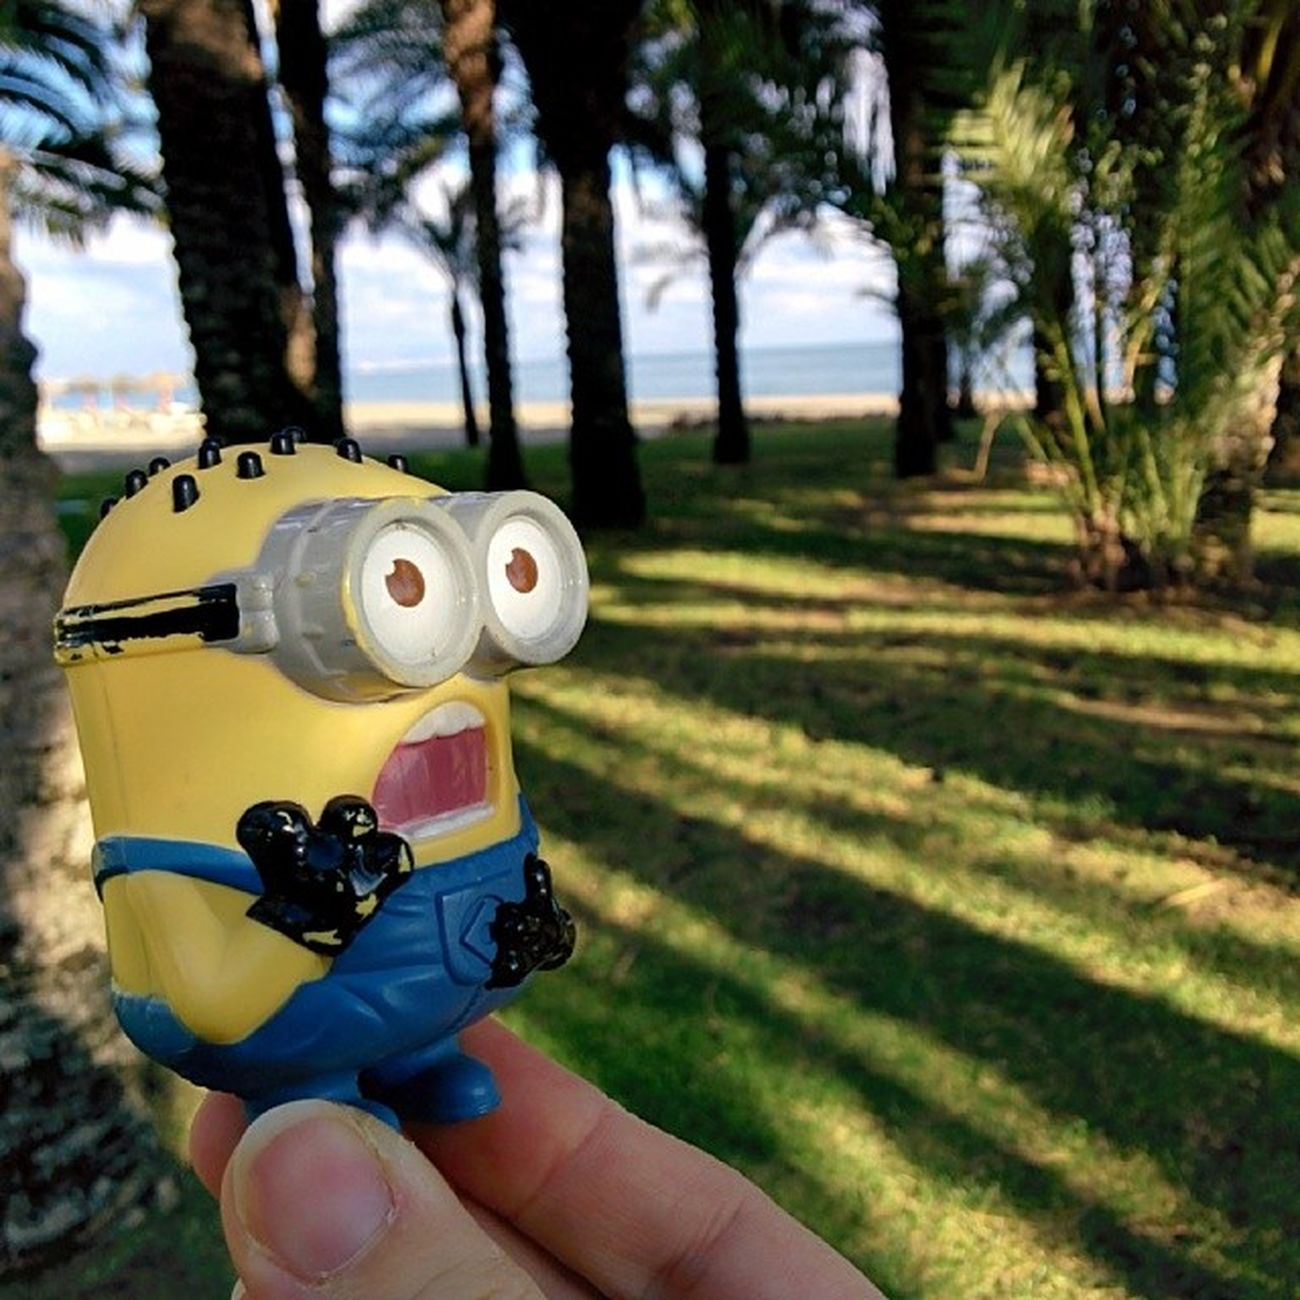 El Minionviajero se convierte en el Minionplayero . Traveller Minion  is now at the beach!